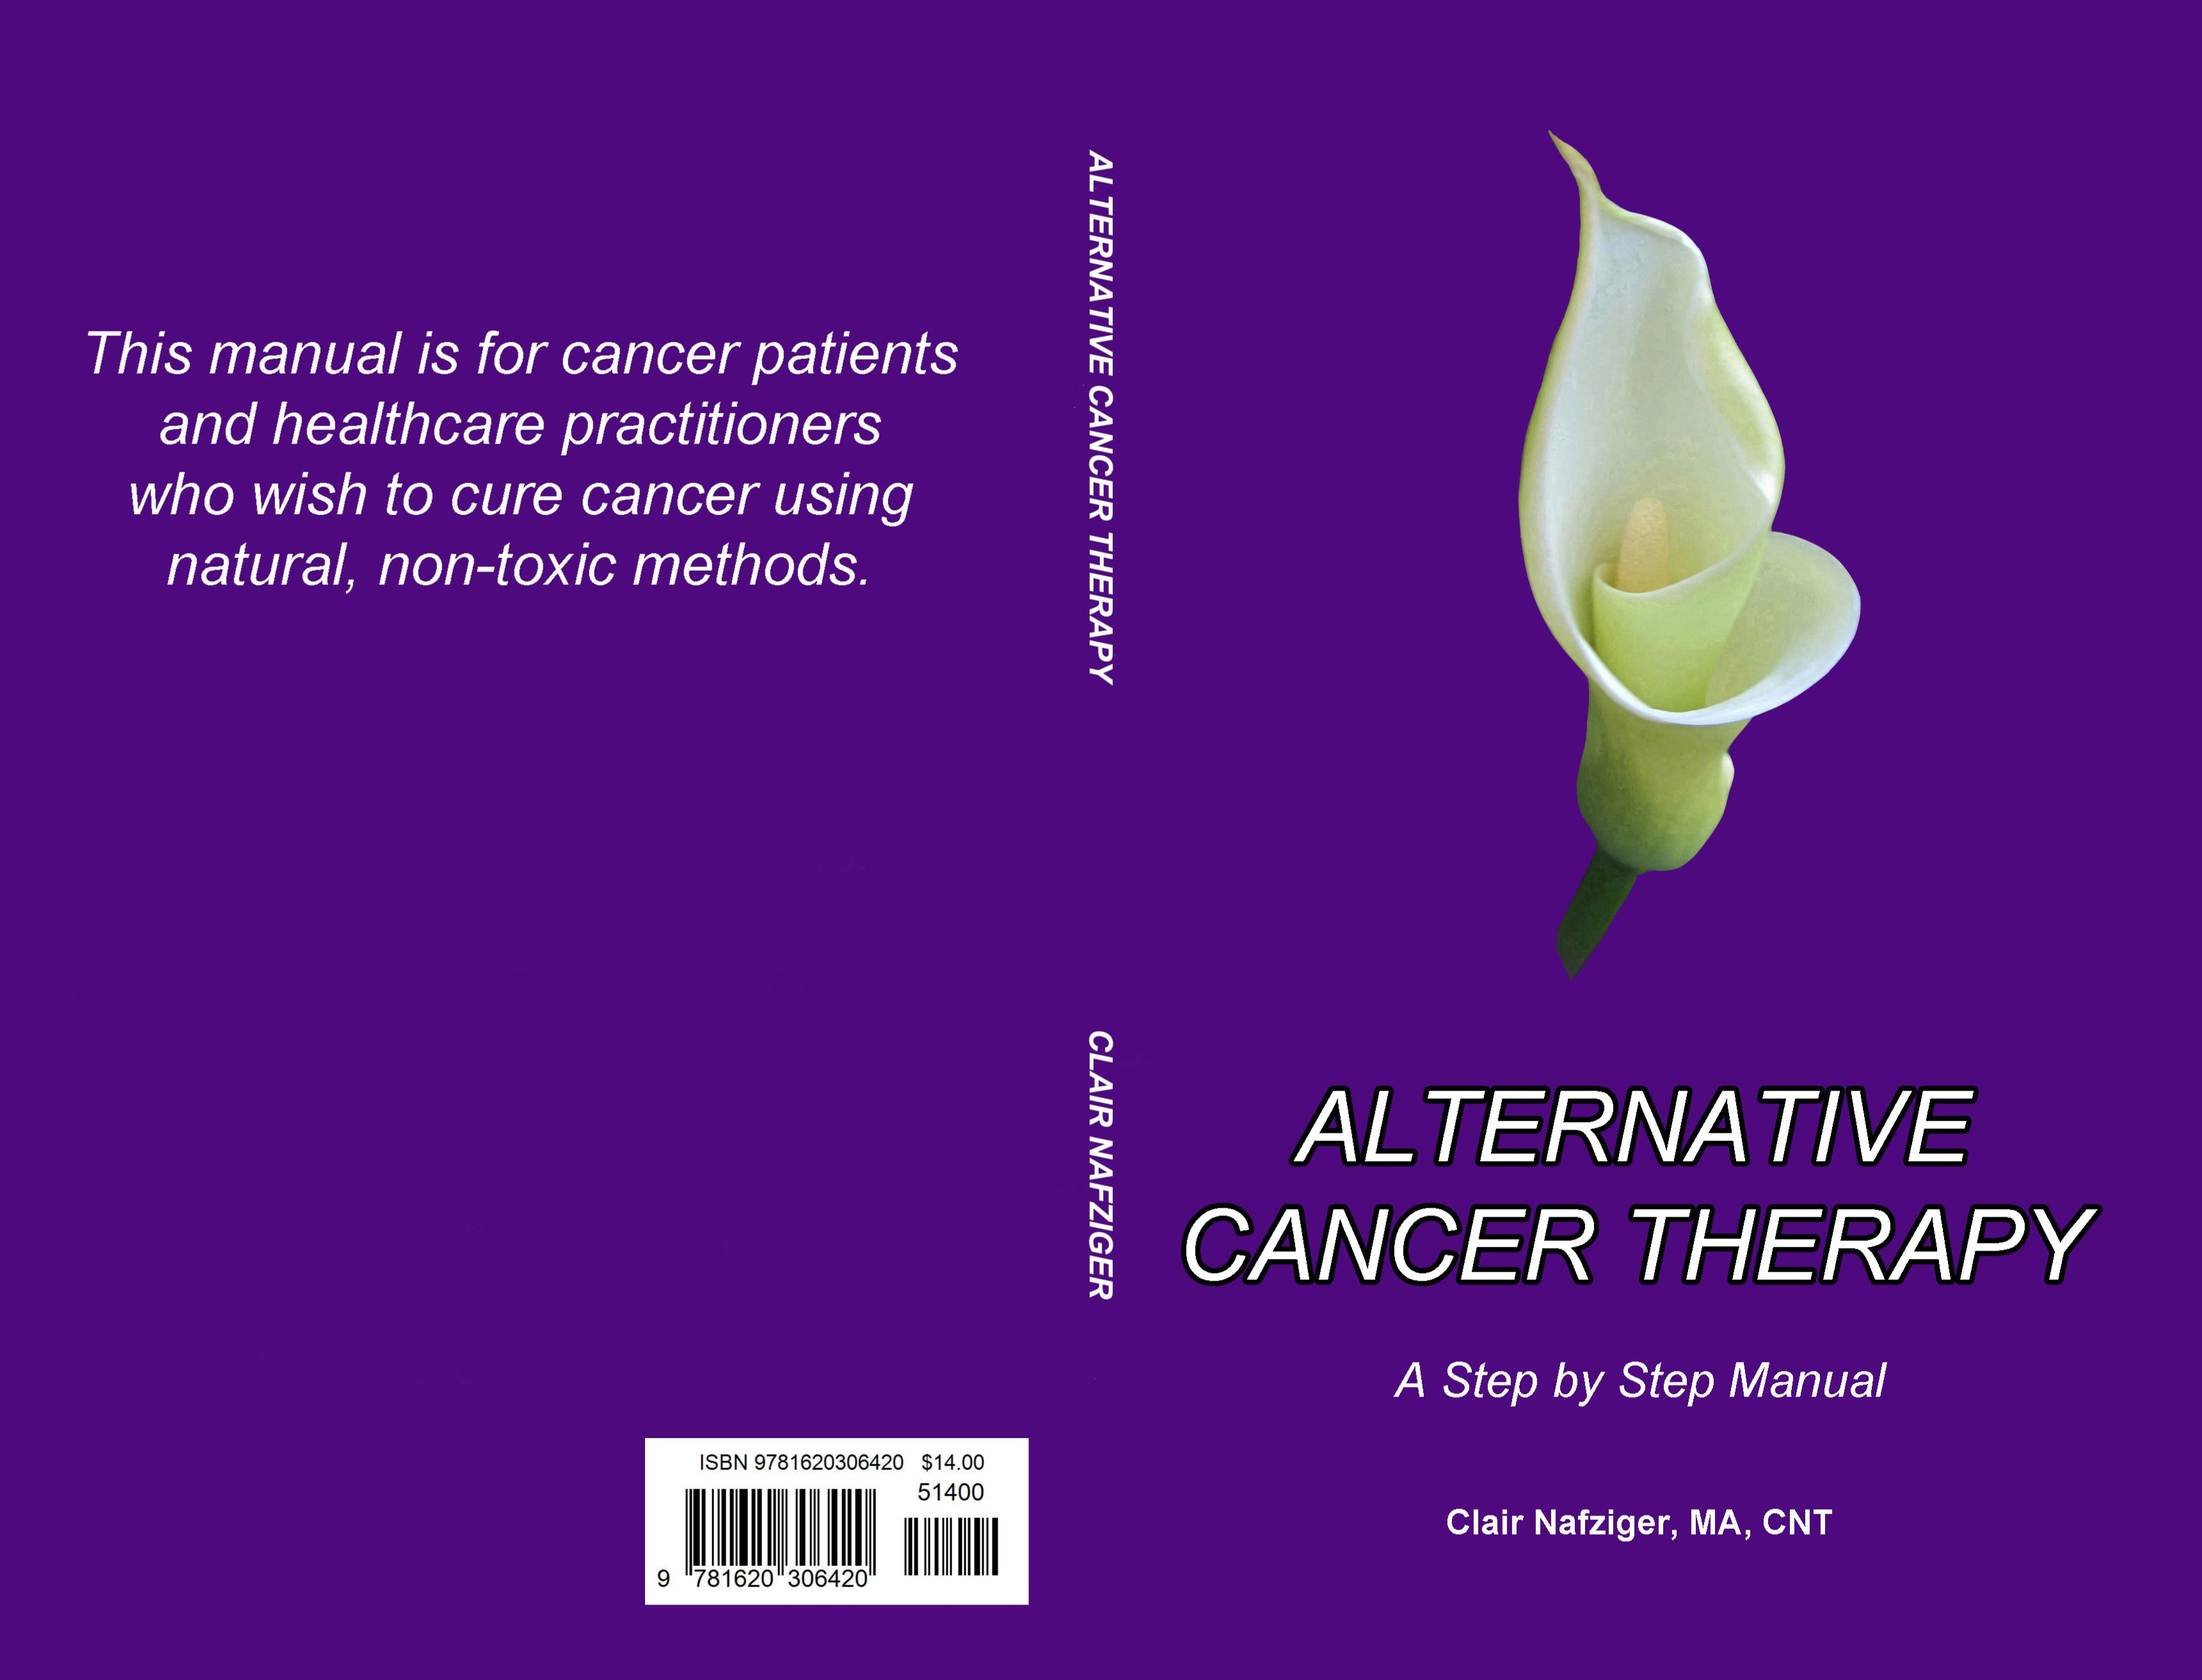 Alternative Cancer Therapy cover image